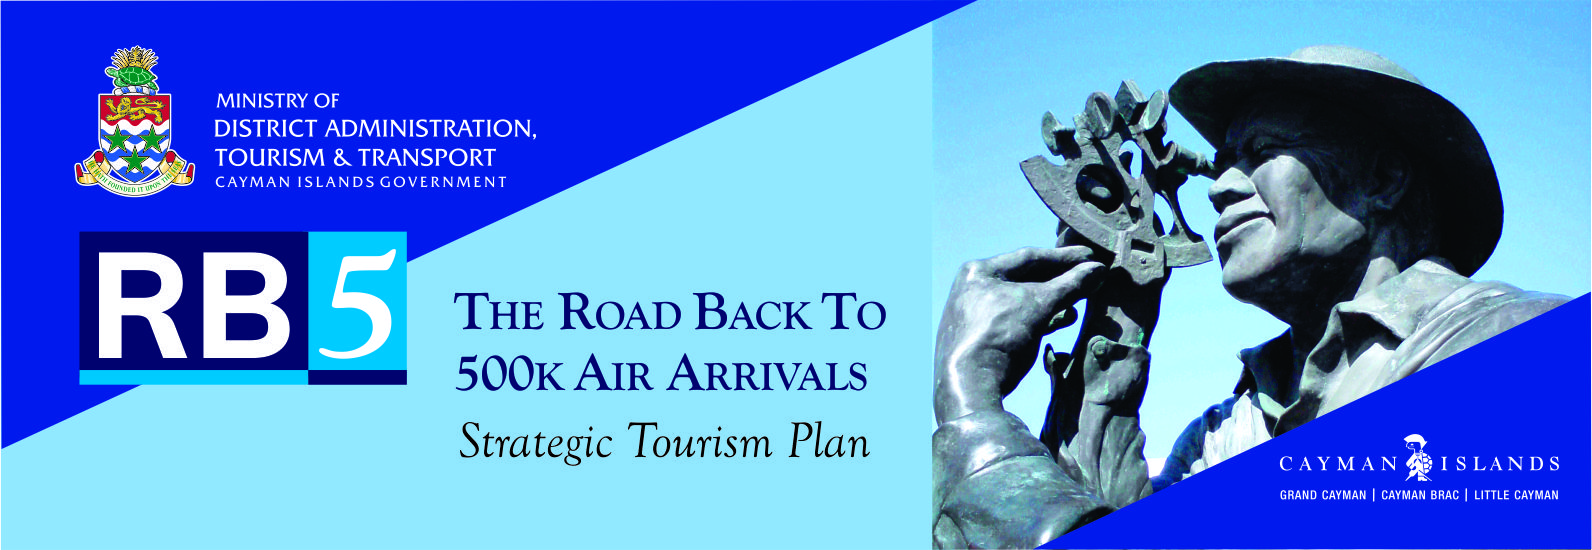 The Road Back To 500k Air Arrivals - Strategic Tourism Plan